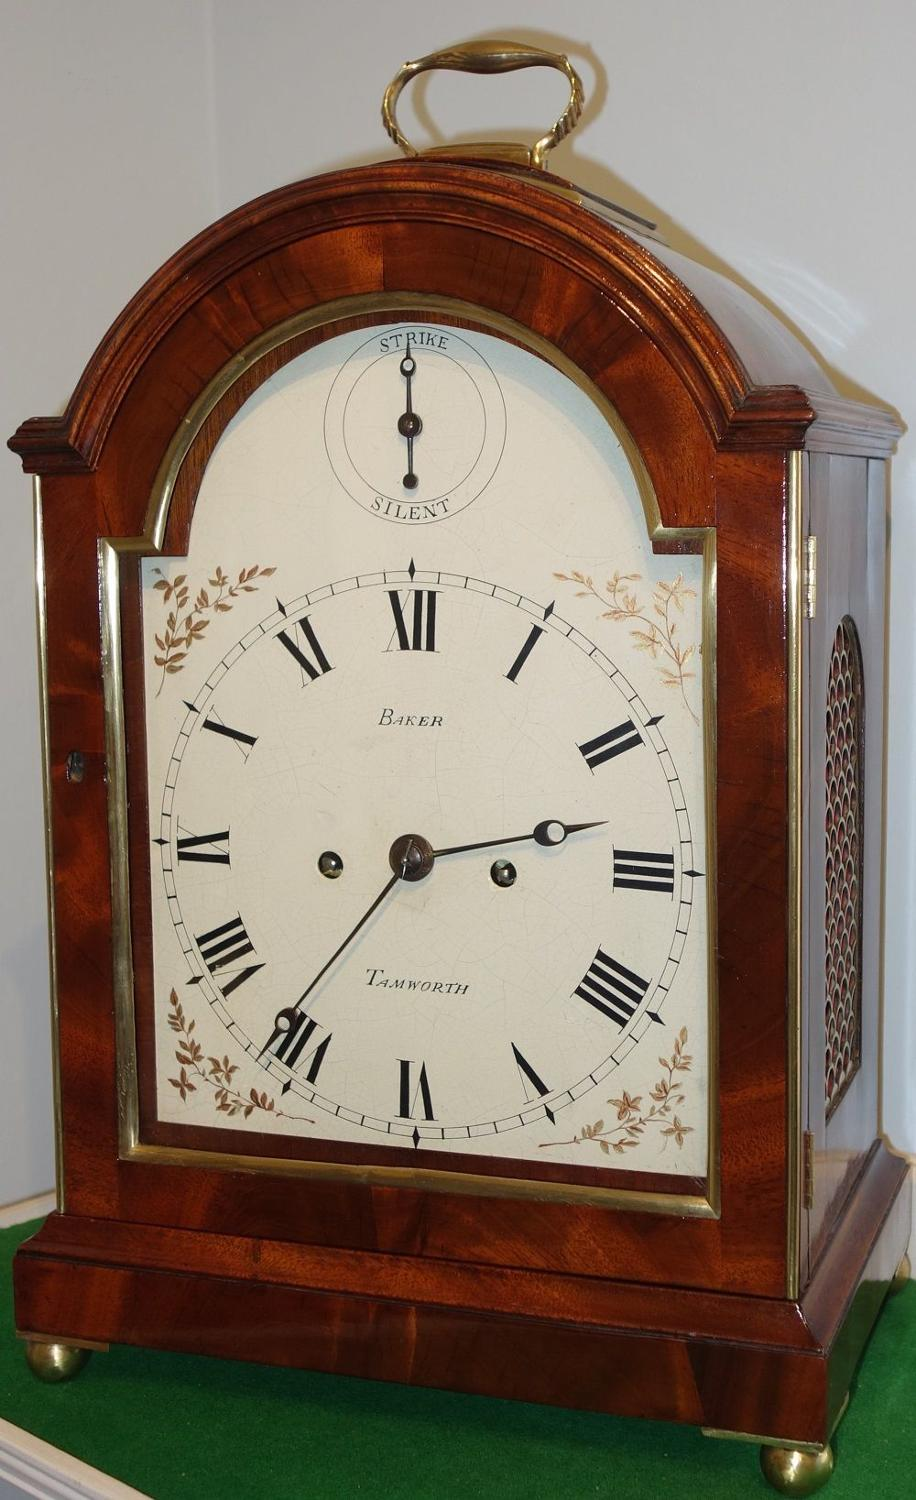 Georgian bracket clock with skeletonise movement, Baker, Tamworth.